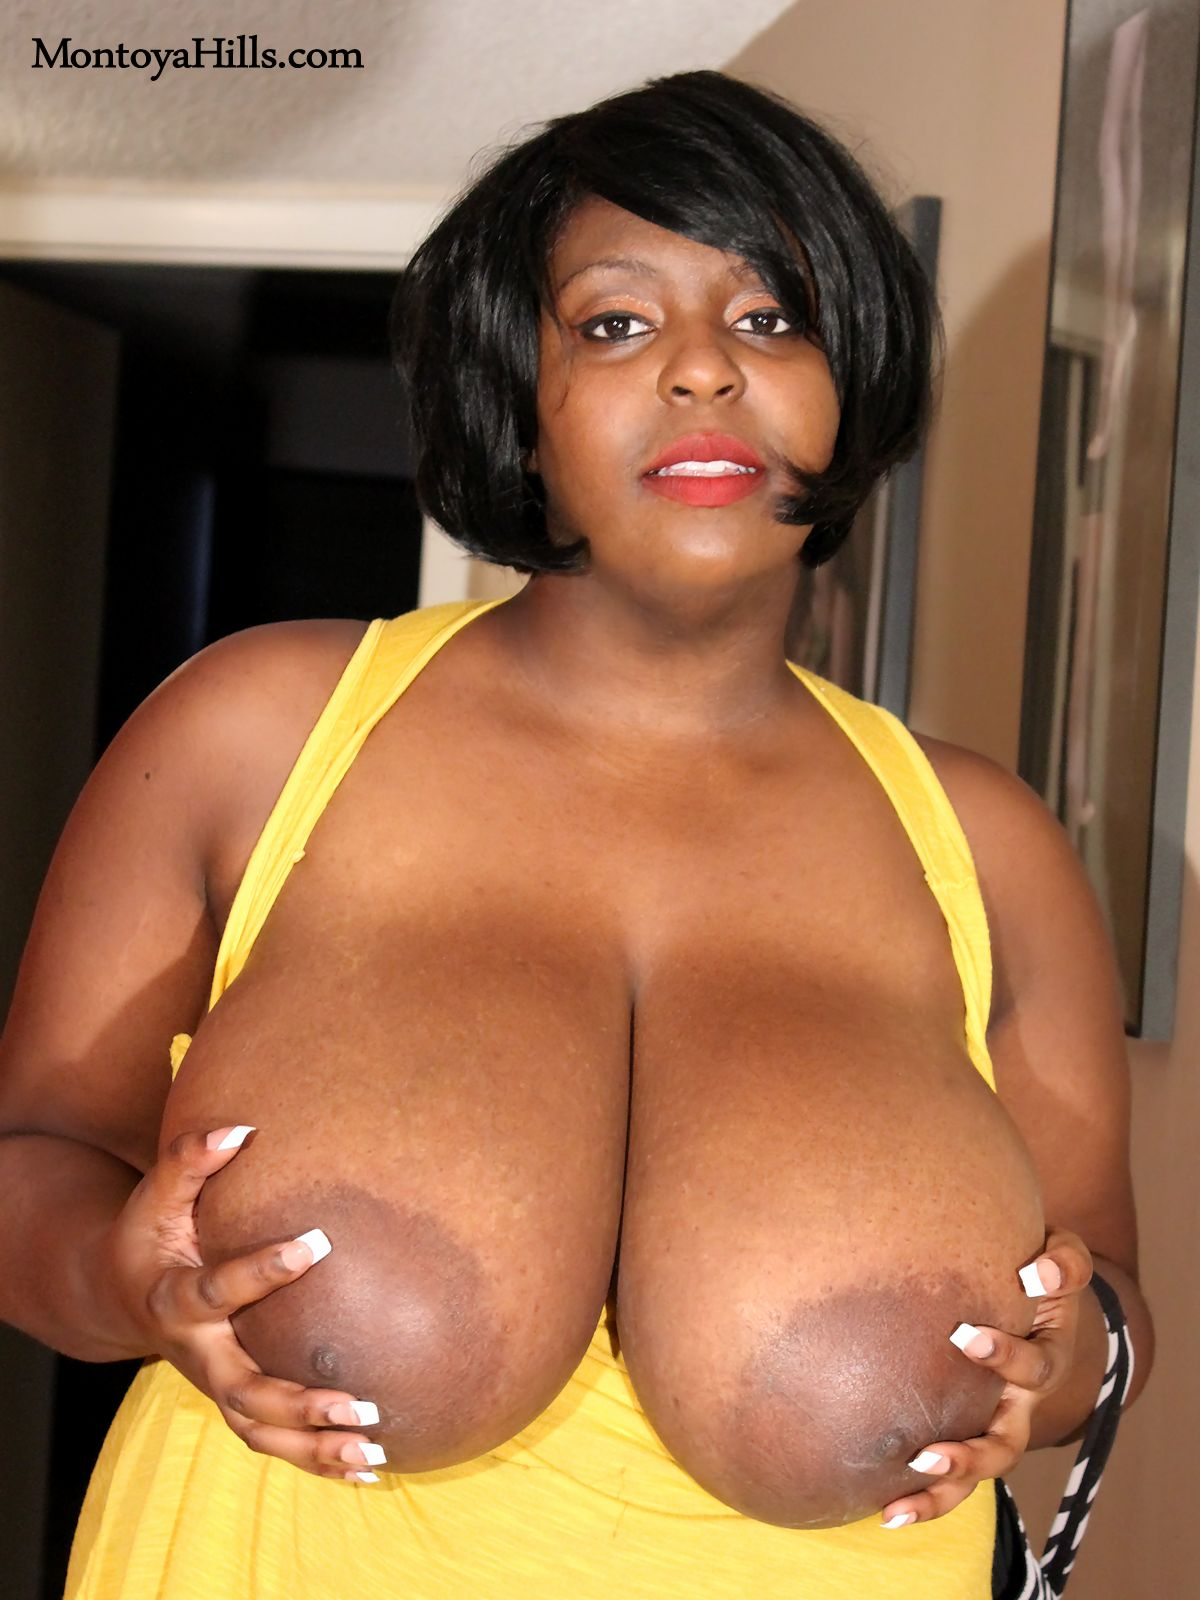 big black milf boobs naked pictures 2018